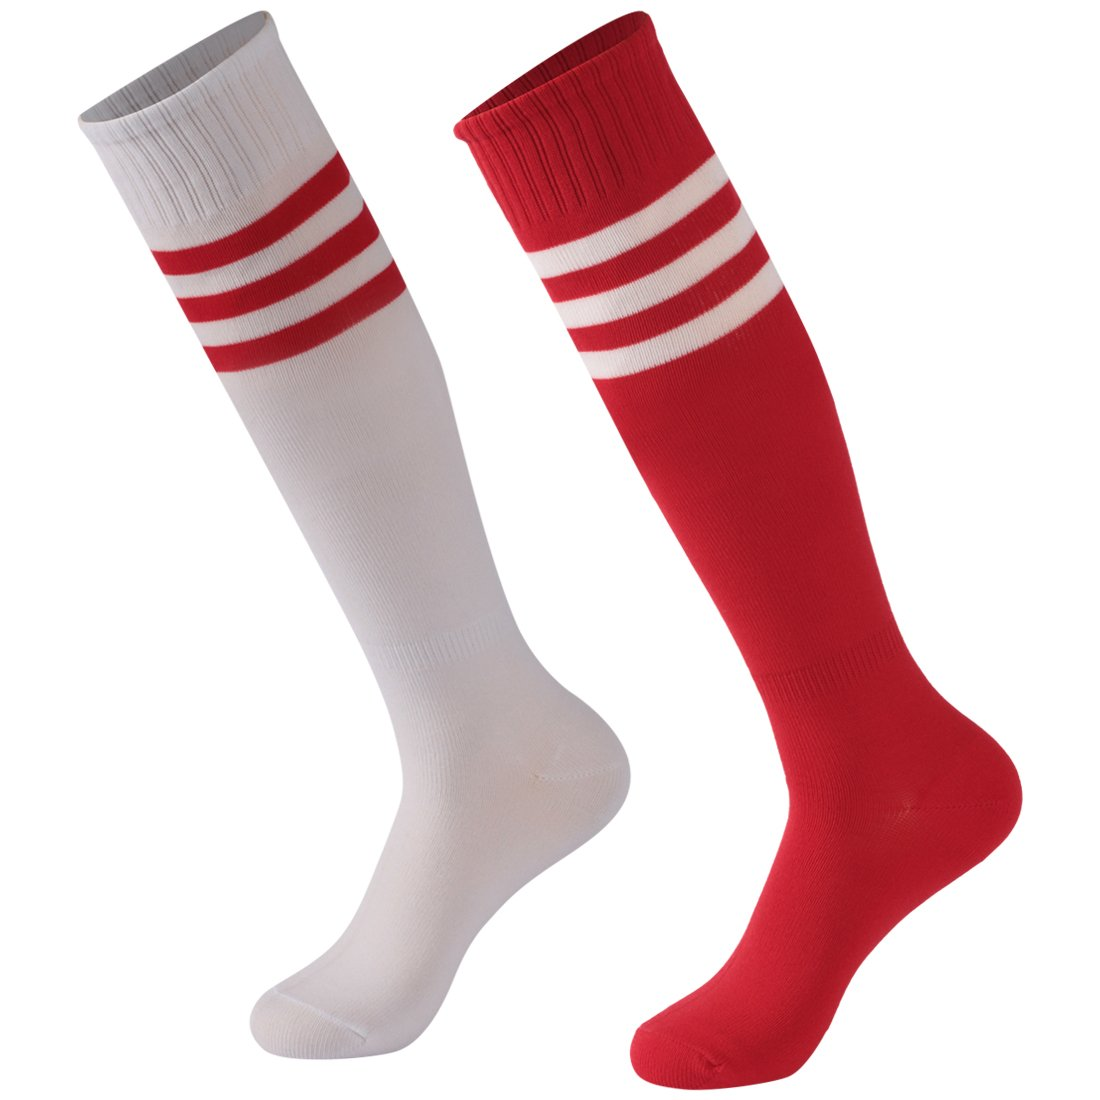 Triple Stripe Calbom Unisex Extra Long Athletic Soccer Rugby Football Sport Tube Socks Pack of 2 White/Red One Size Gift for Students by Calbom